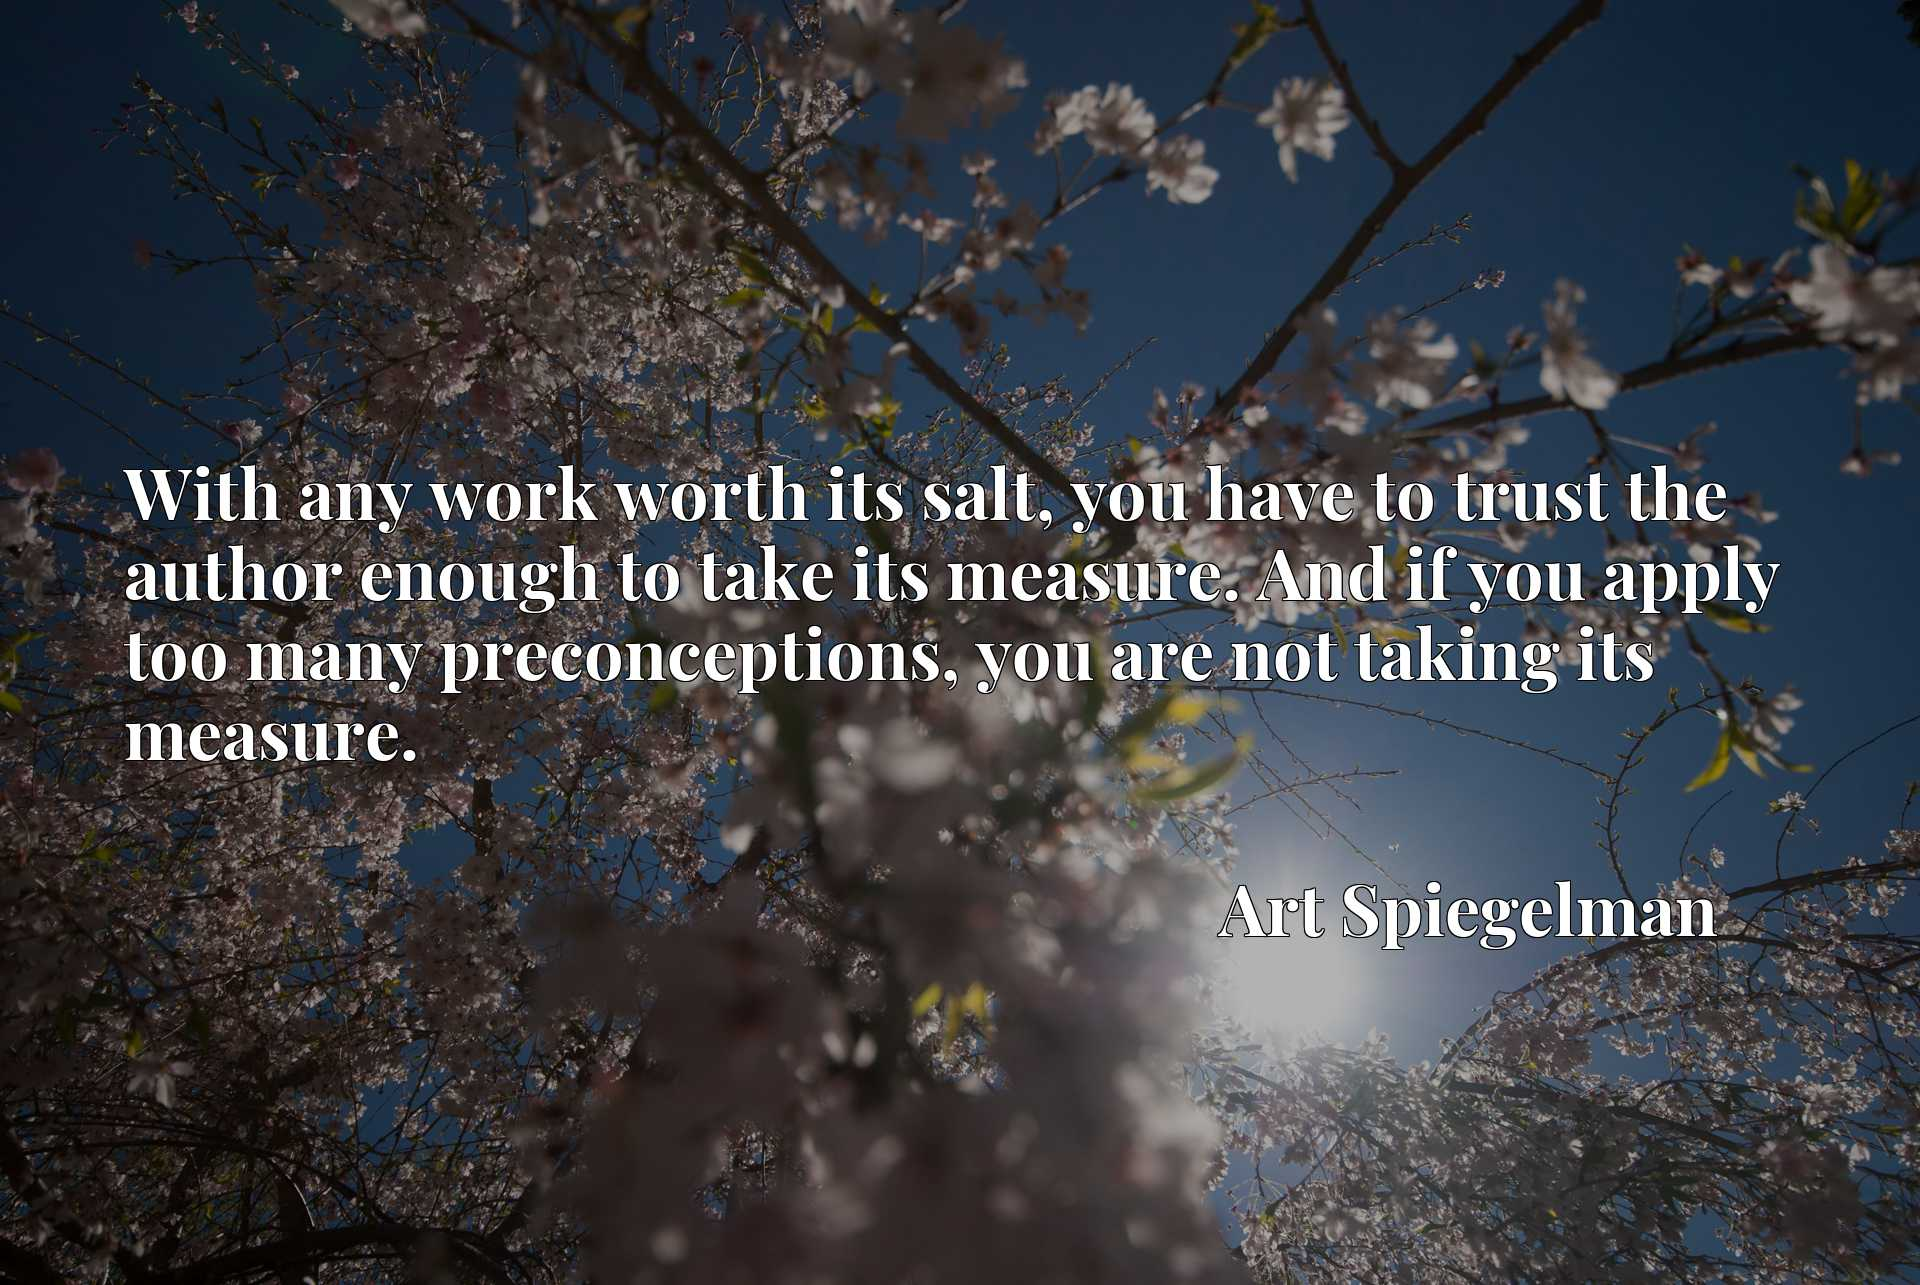 With any work worth its salt, you have to trust the author enough to take its measure. And if you apply too many preconceptions, you are not taking its measure.